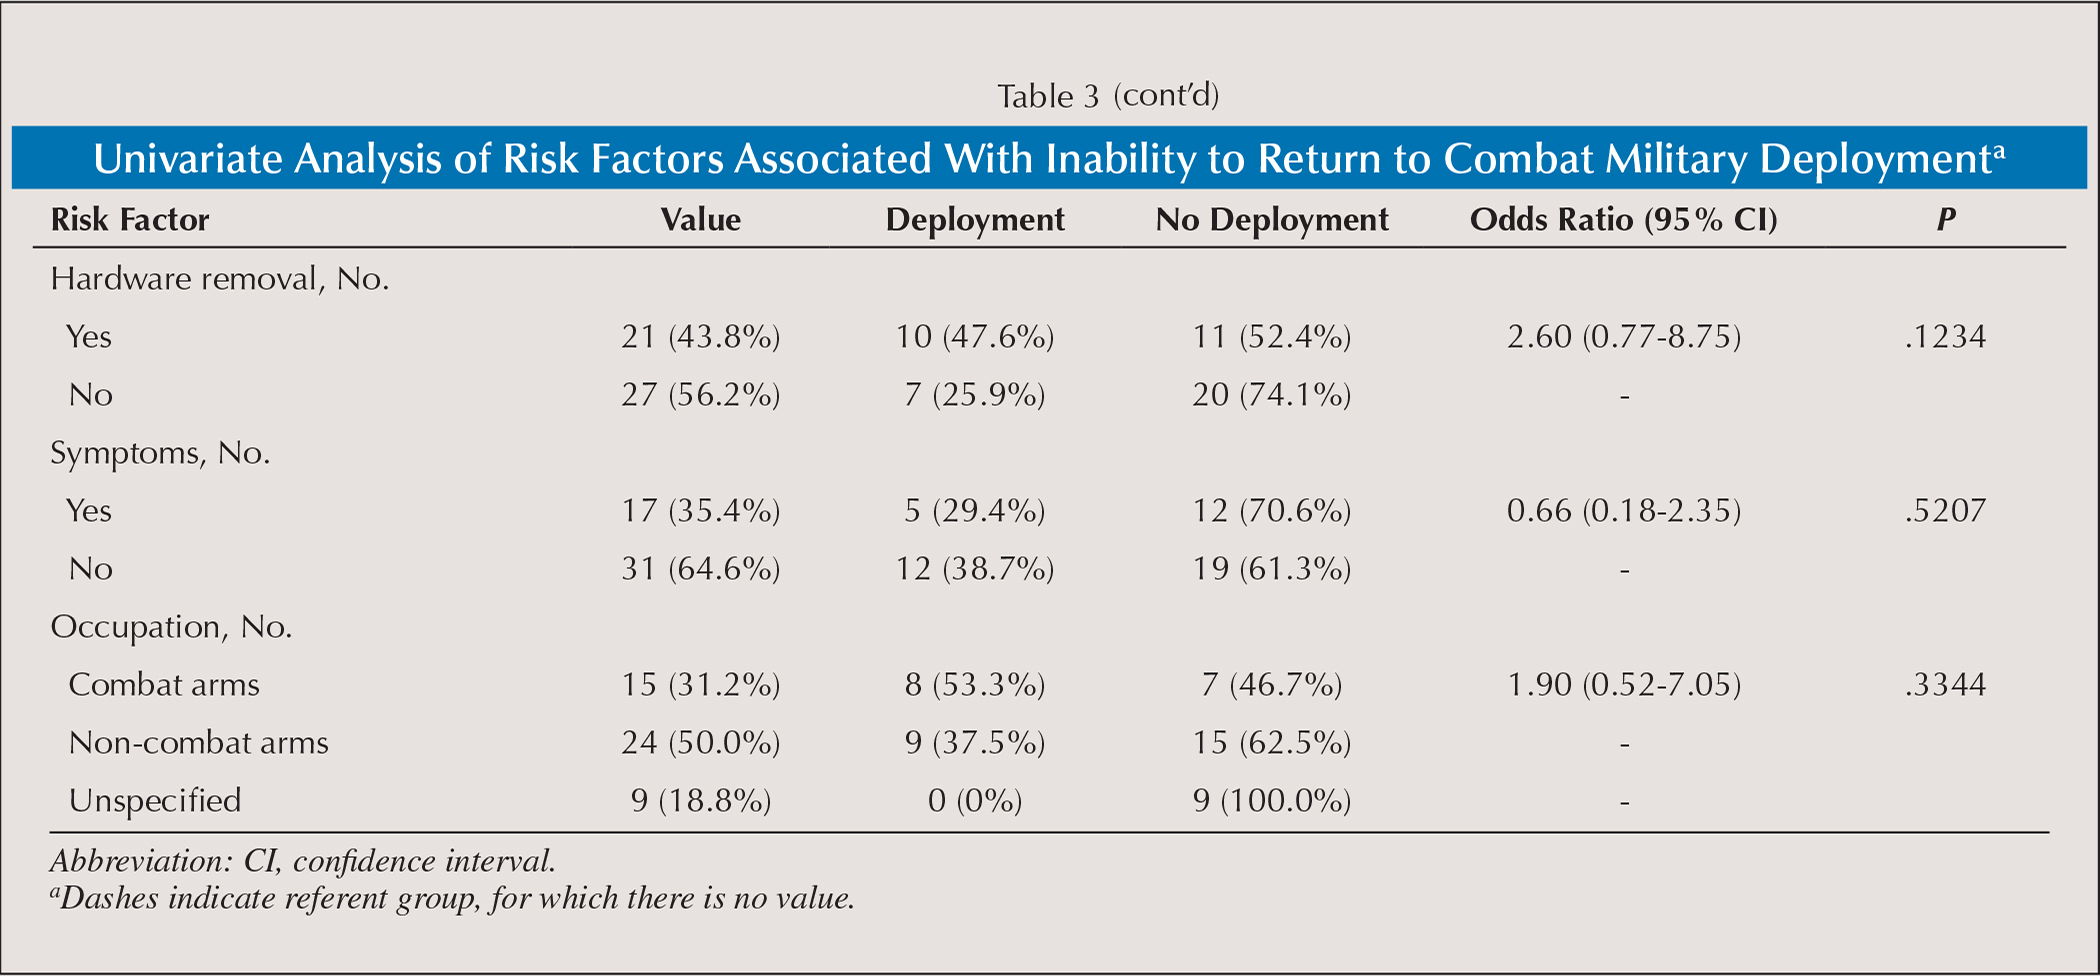 Univariate Analysis of Risk Factors Associated With Inability to Return to Combat Military Deploymenta